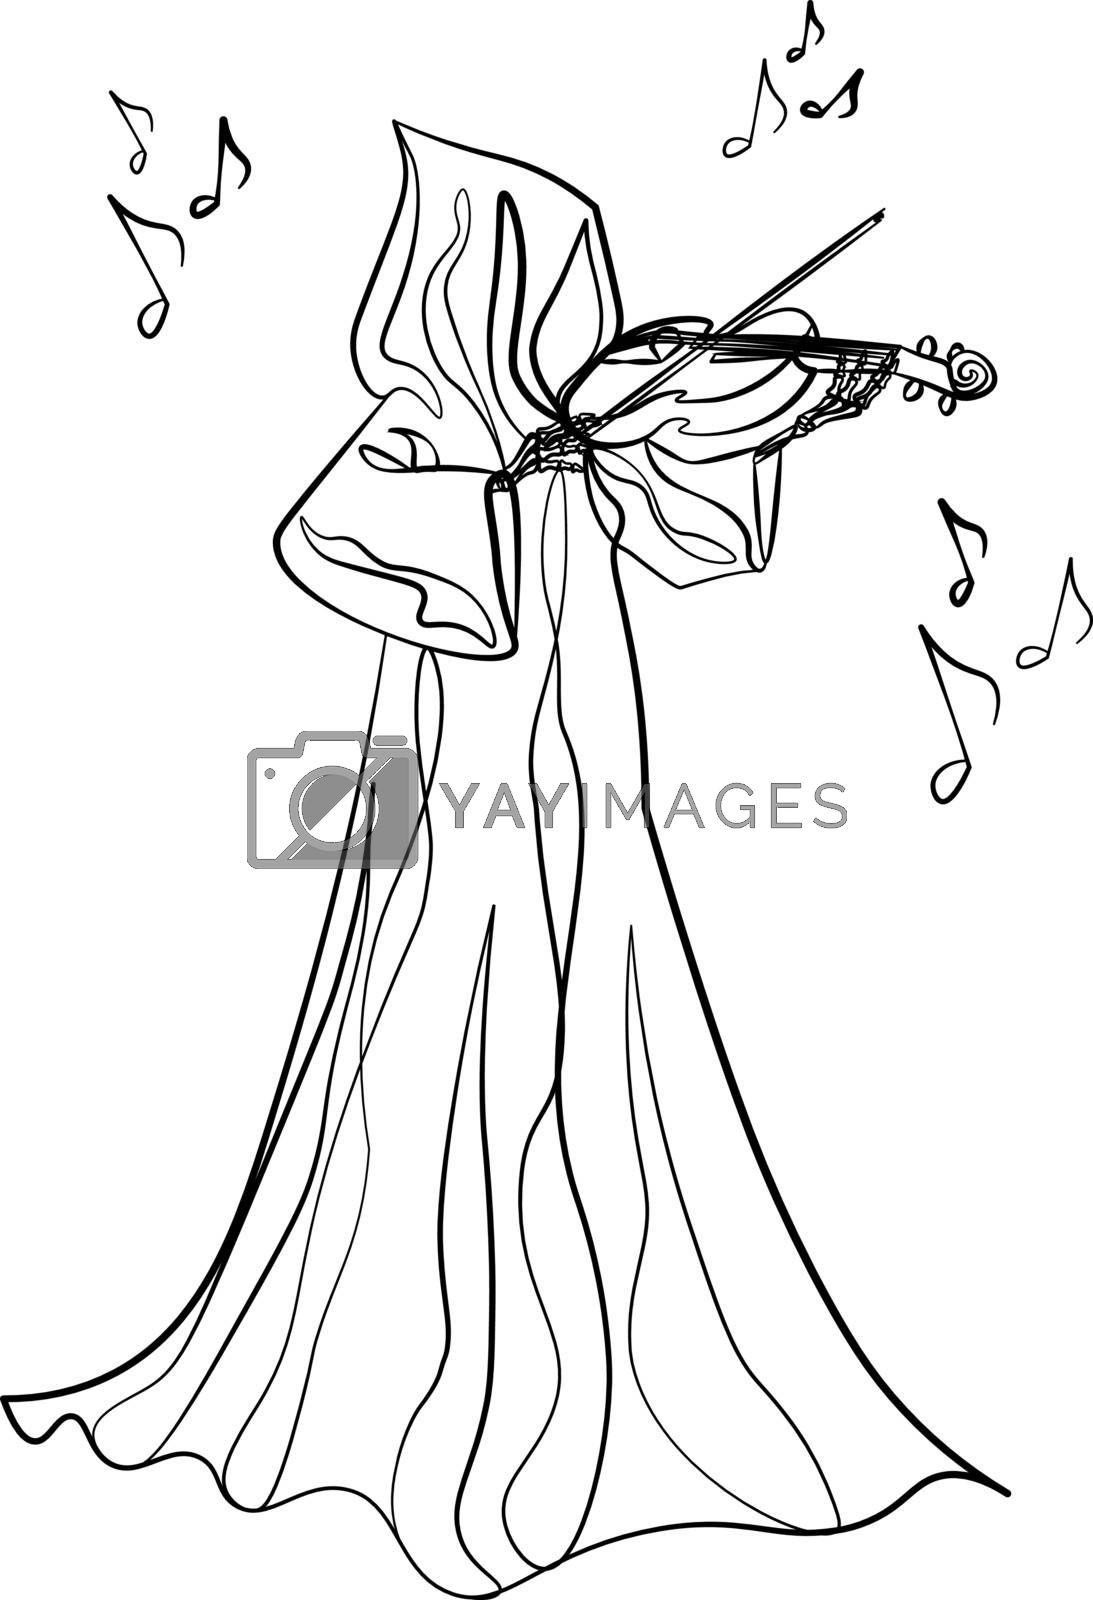 Music of death - contour grim reaper playing on violin